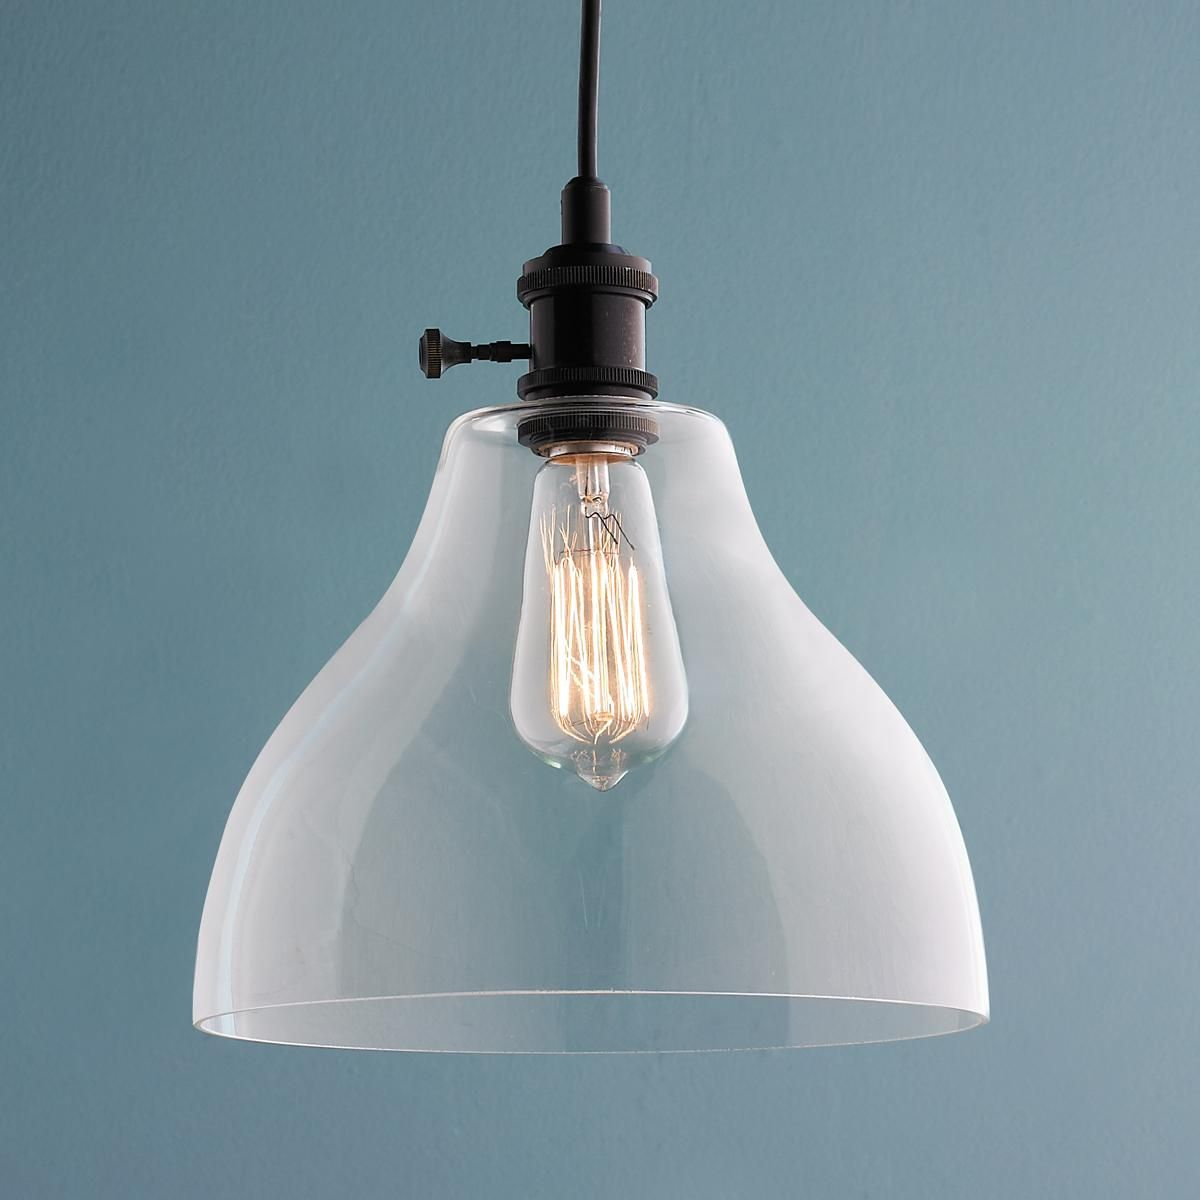 Clear Glass Bell Pendant Light Large Glass Pendant Light Pendant Light Glass Pendant Shades